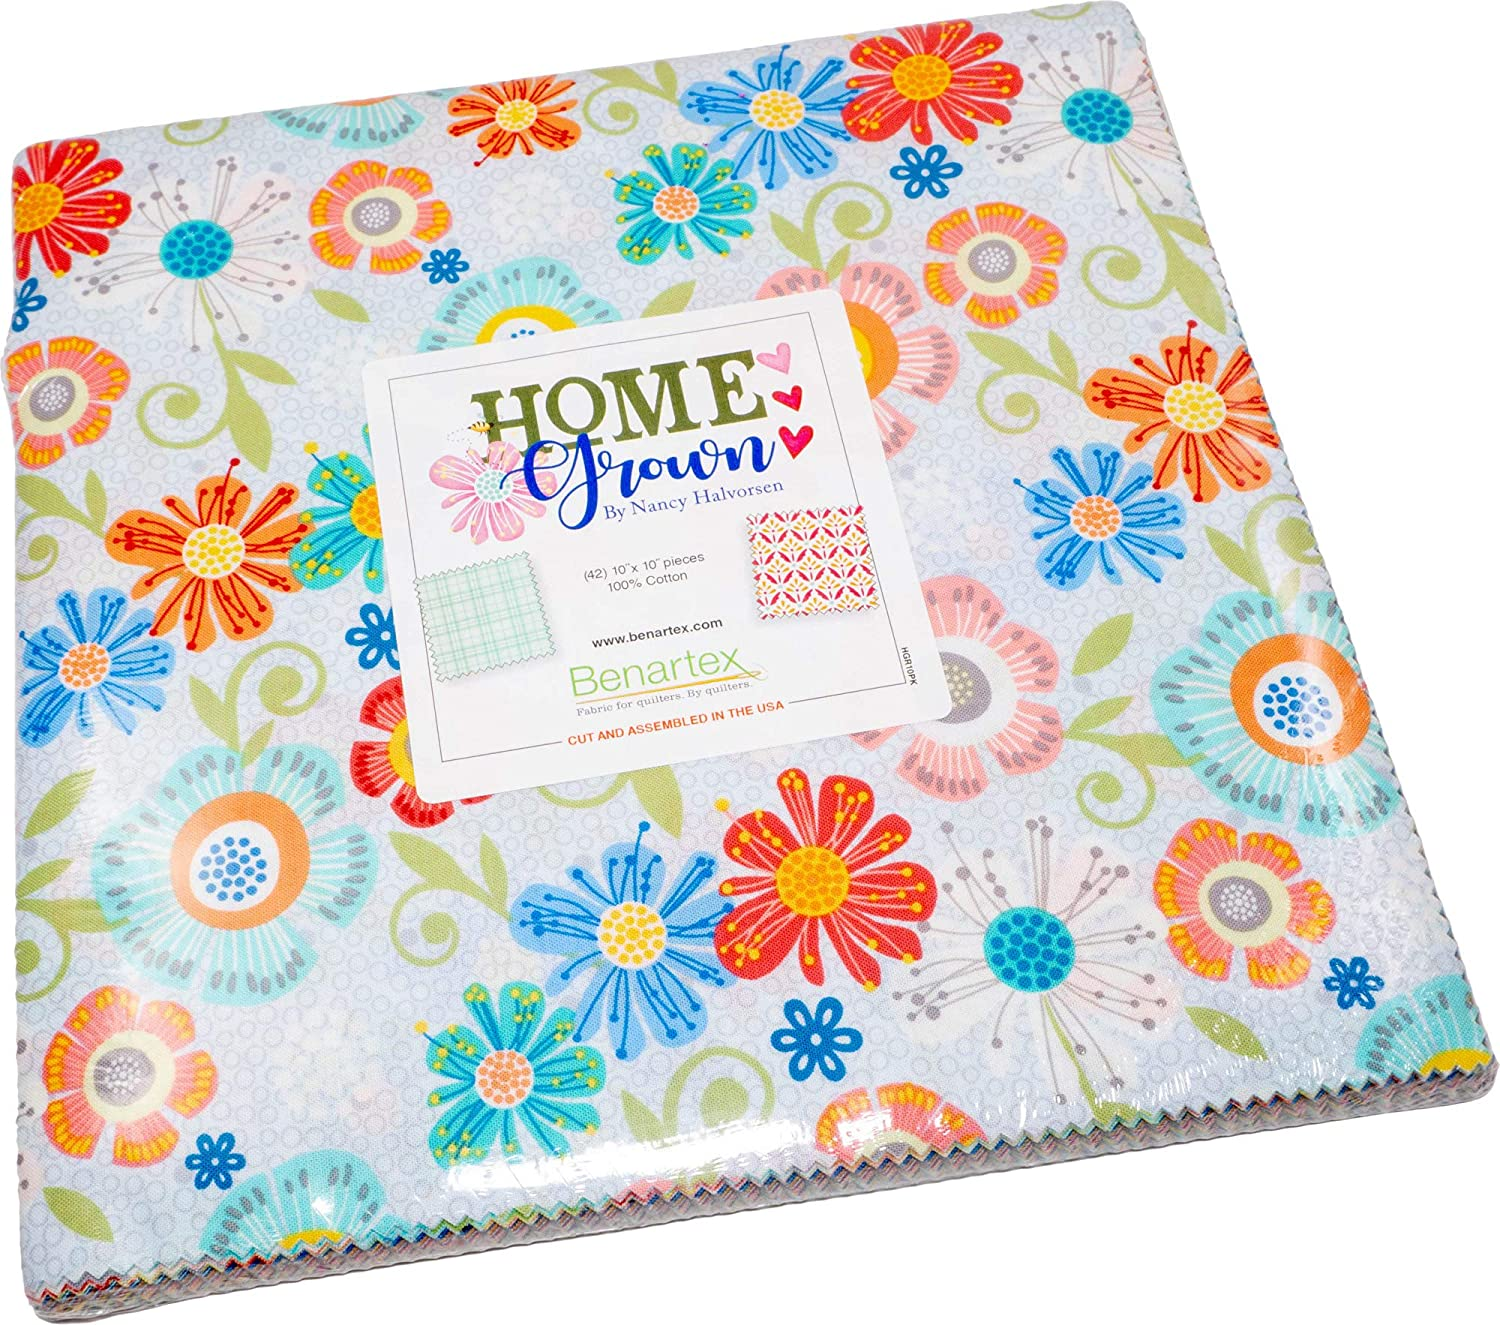 Nancy Halverson Home Max 47% OFF Grown 10X10 Pack 42 Popular product Layer 10-inch Squares C